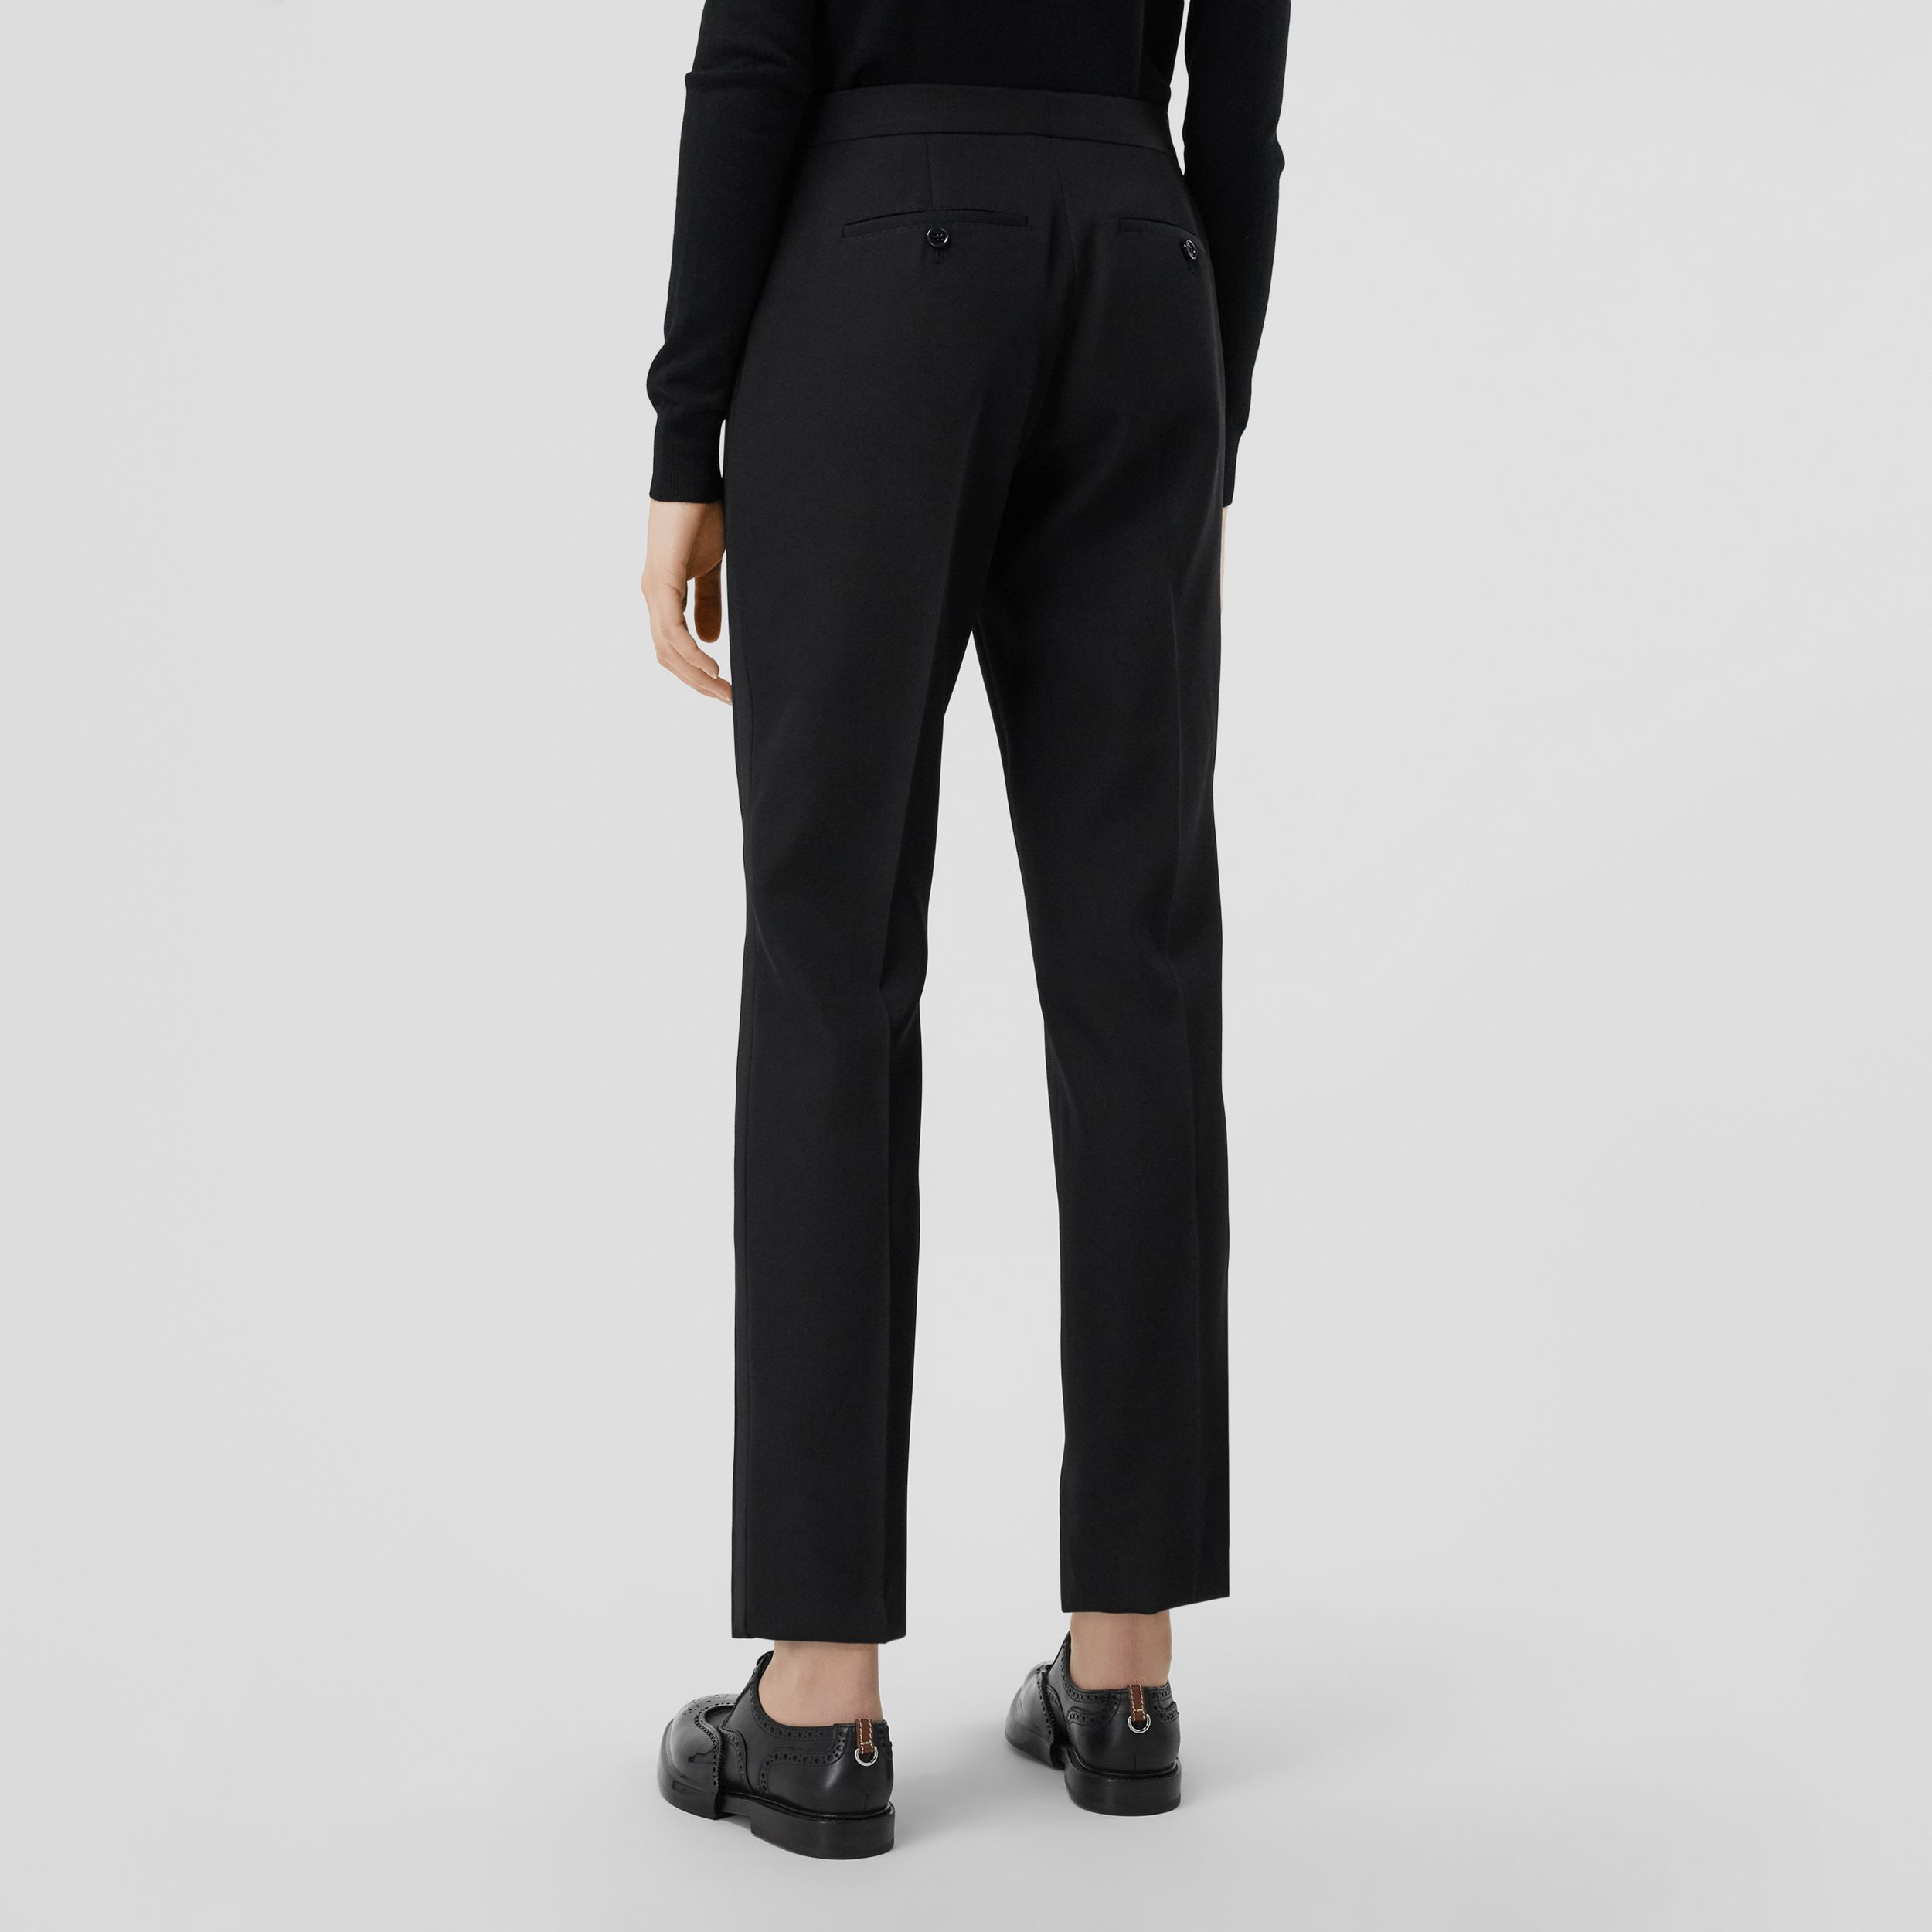 Silk Blend Side Stripe Wool Tailored Trousers in Black - Women | Burberry Australia - 3